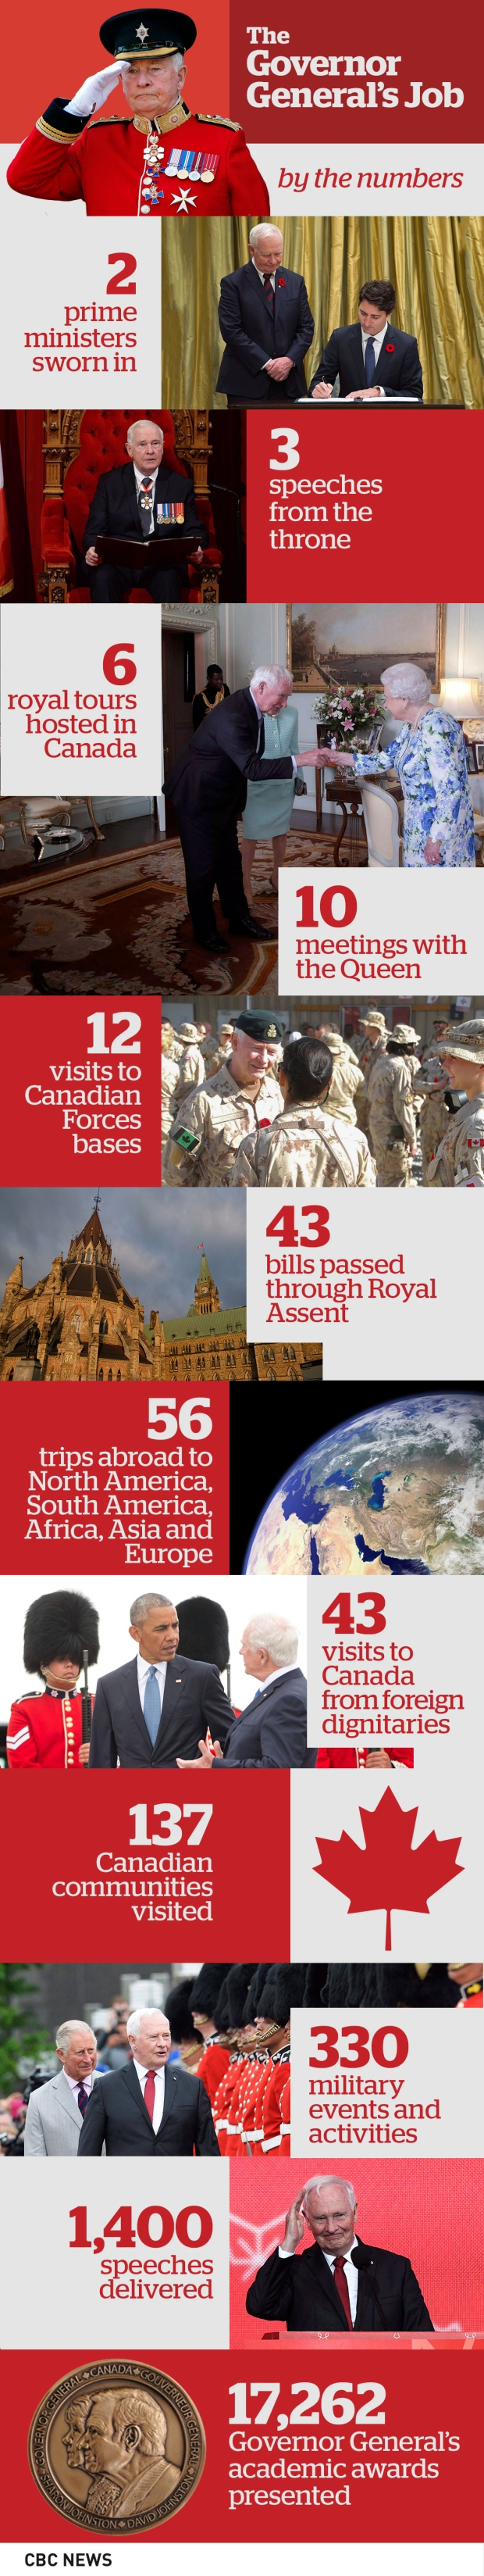 governor-general-s-job-by-the-numbers.jpg